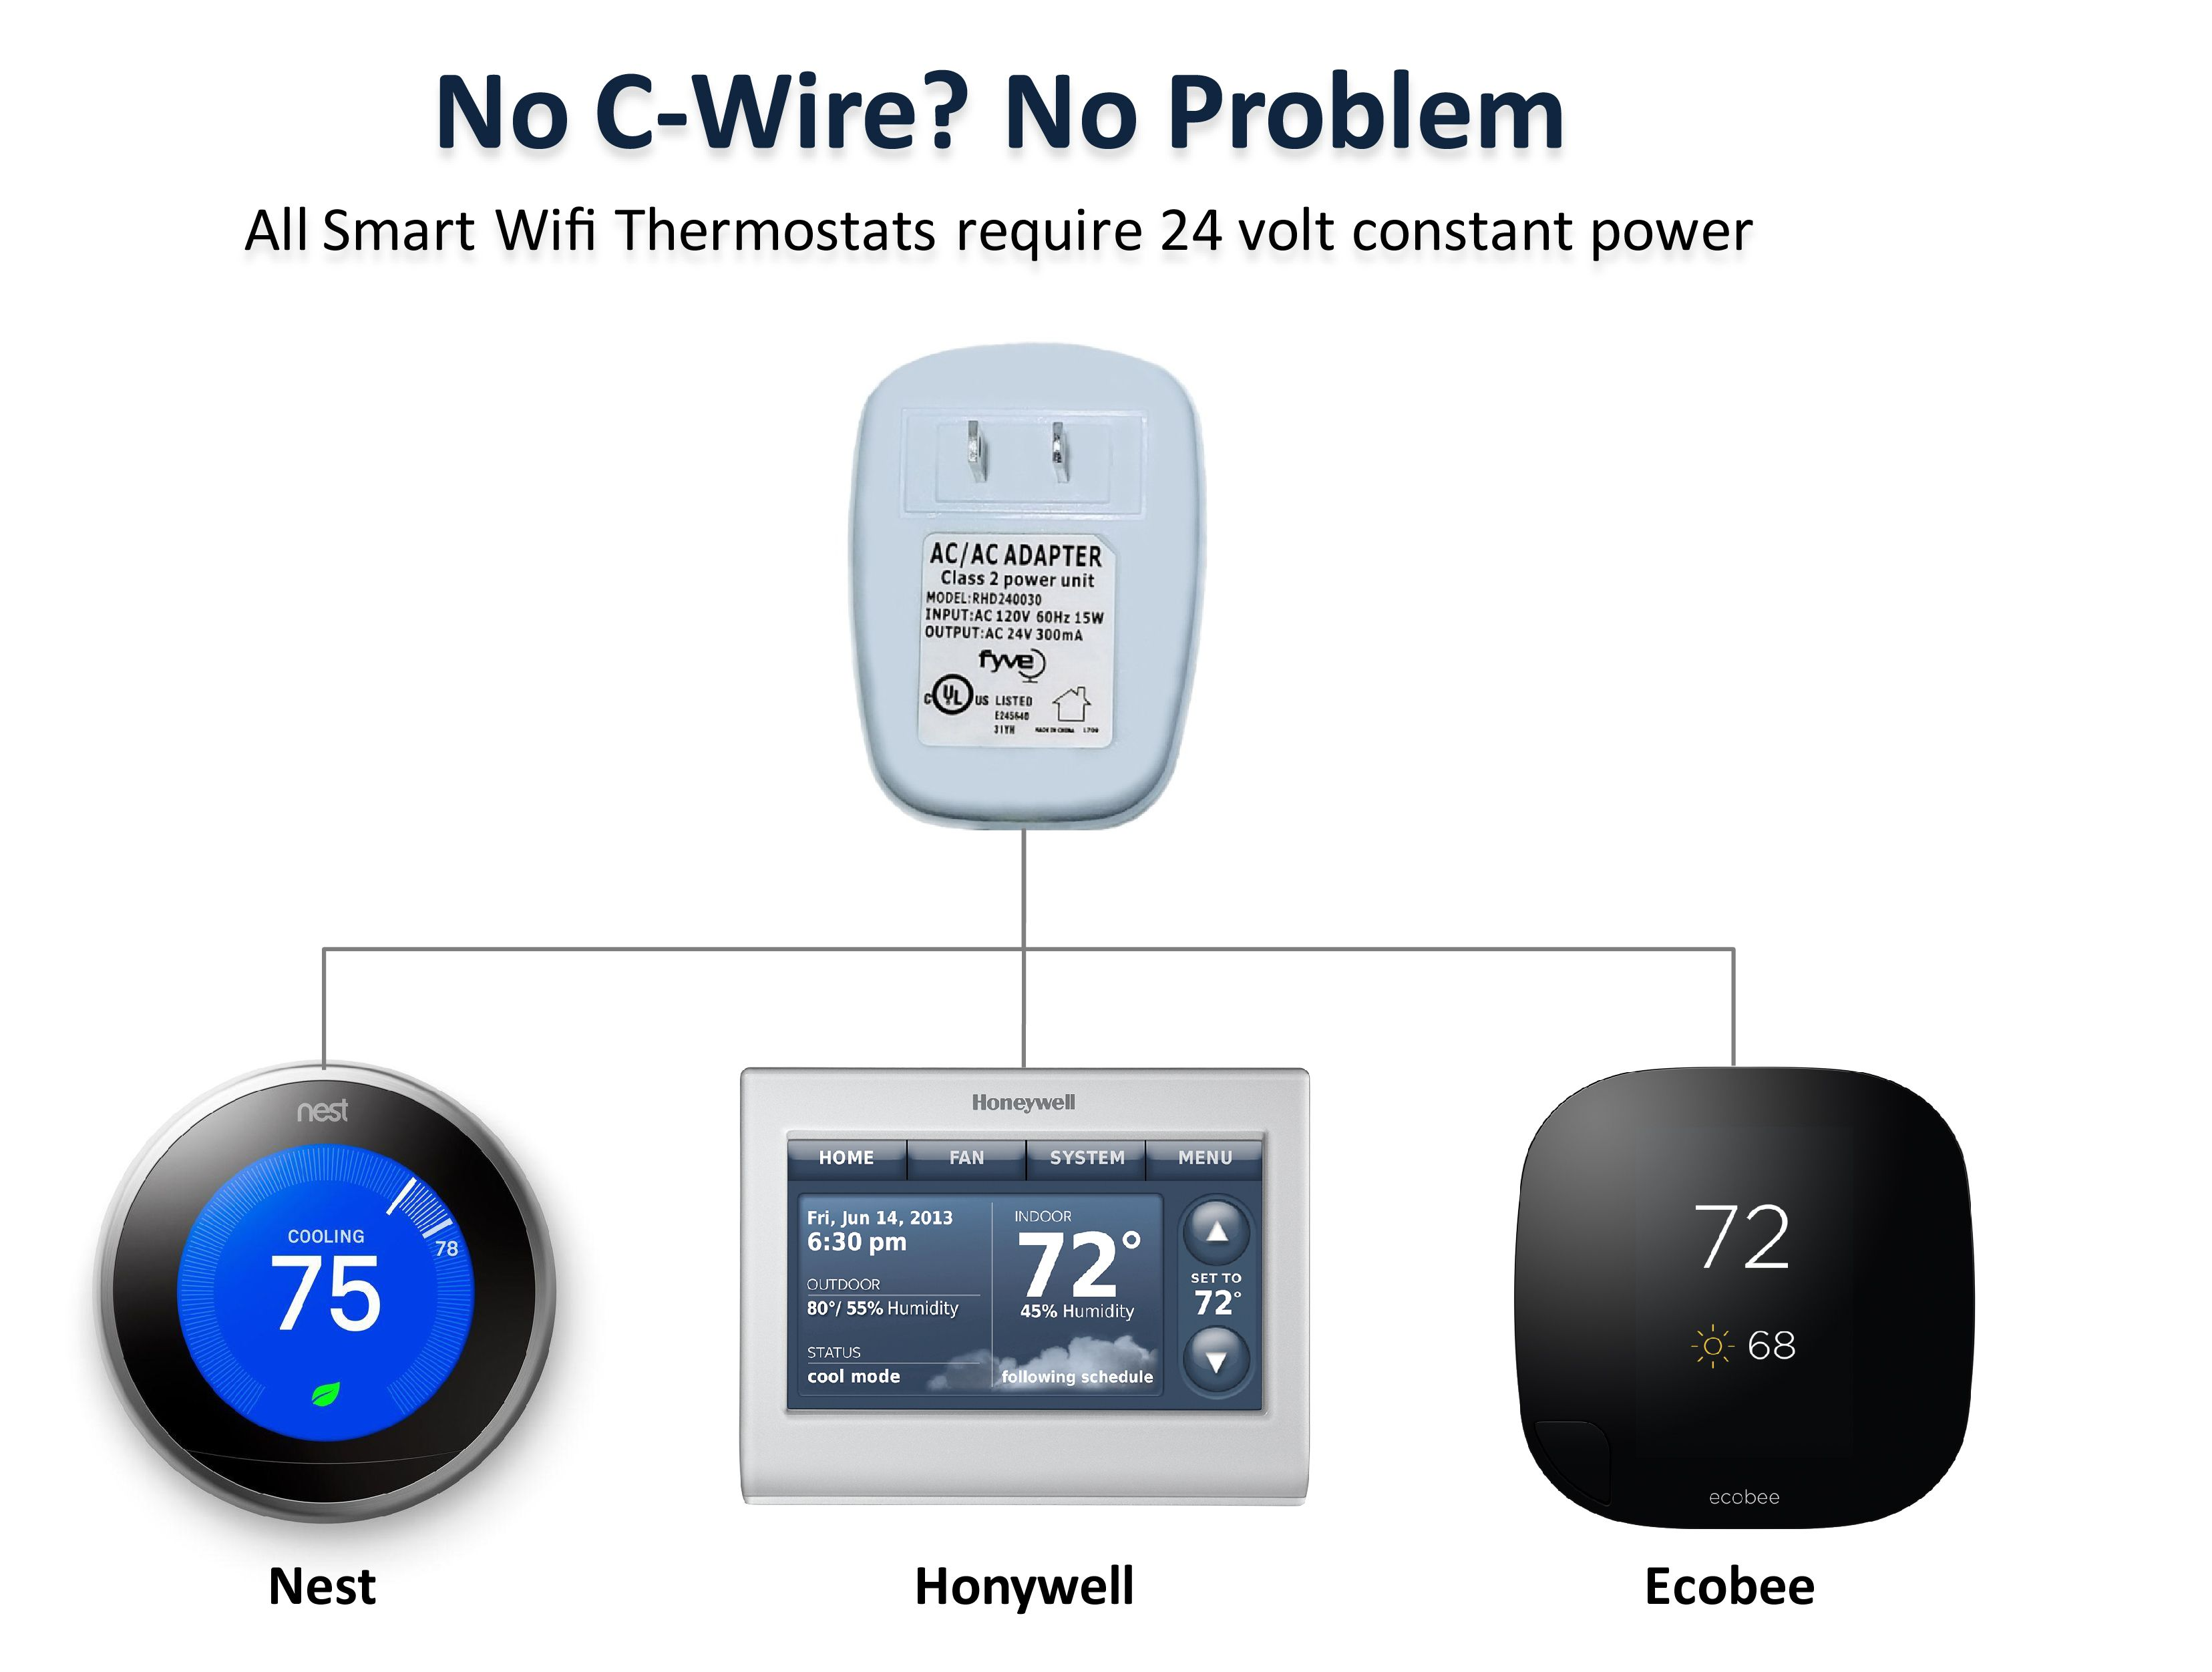 Want a snazzy new wifi thermostat but your home has